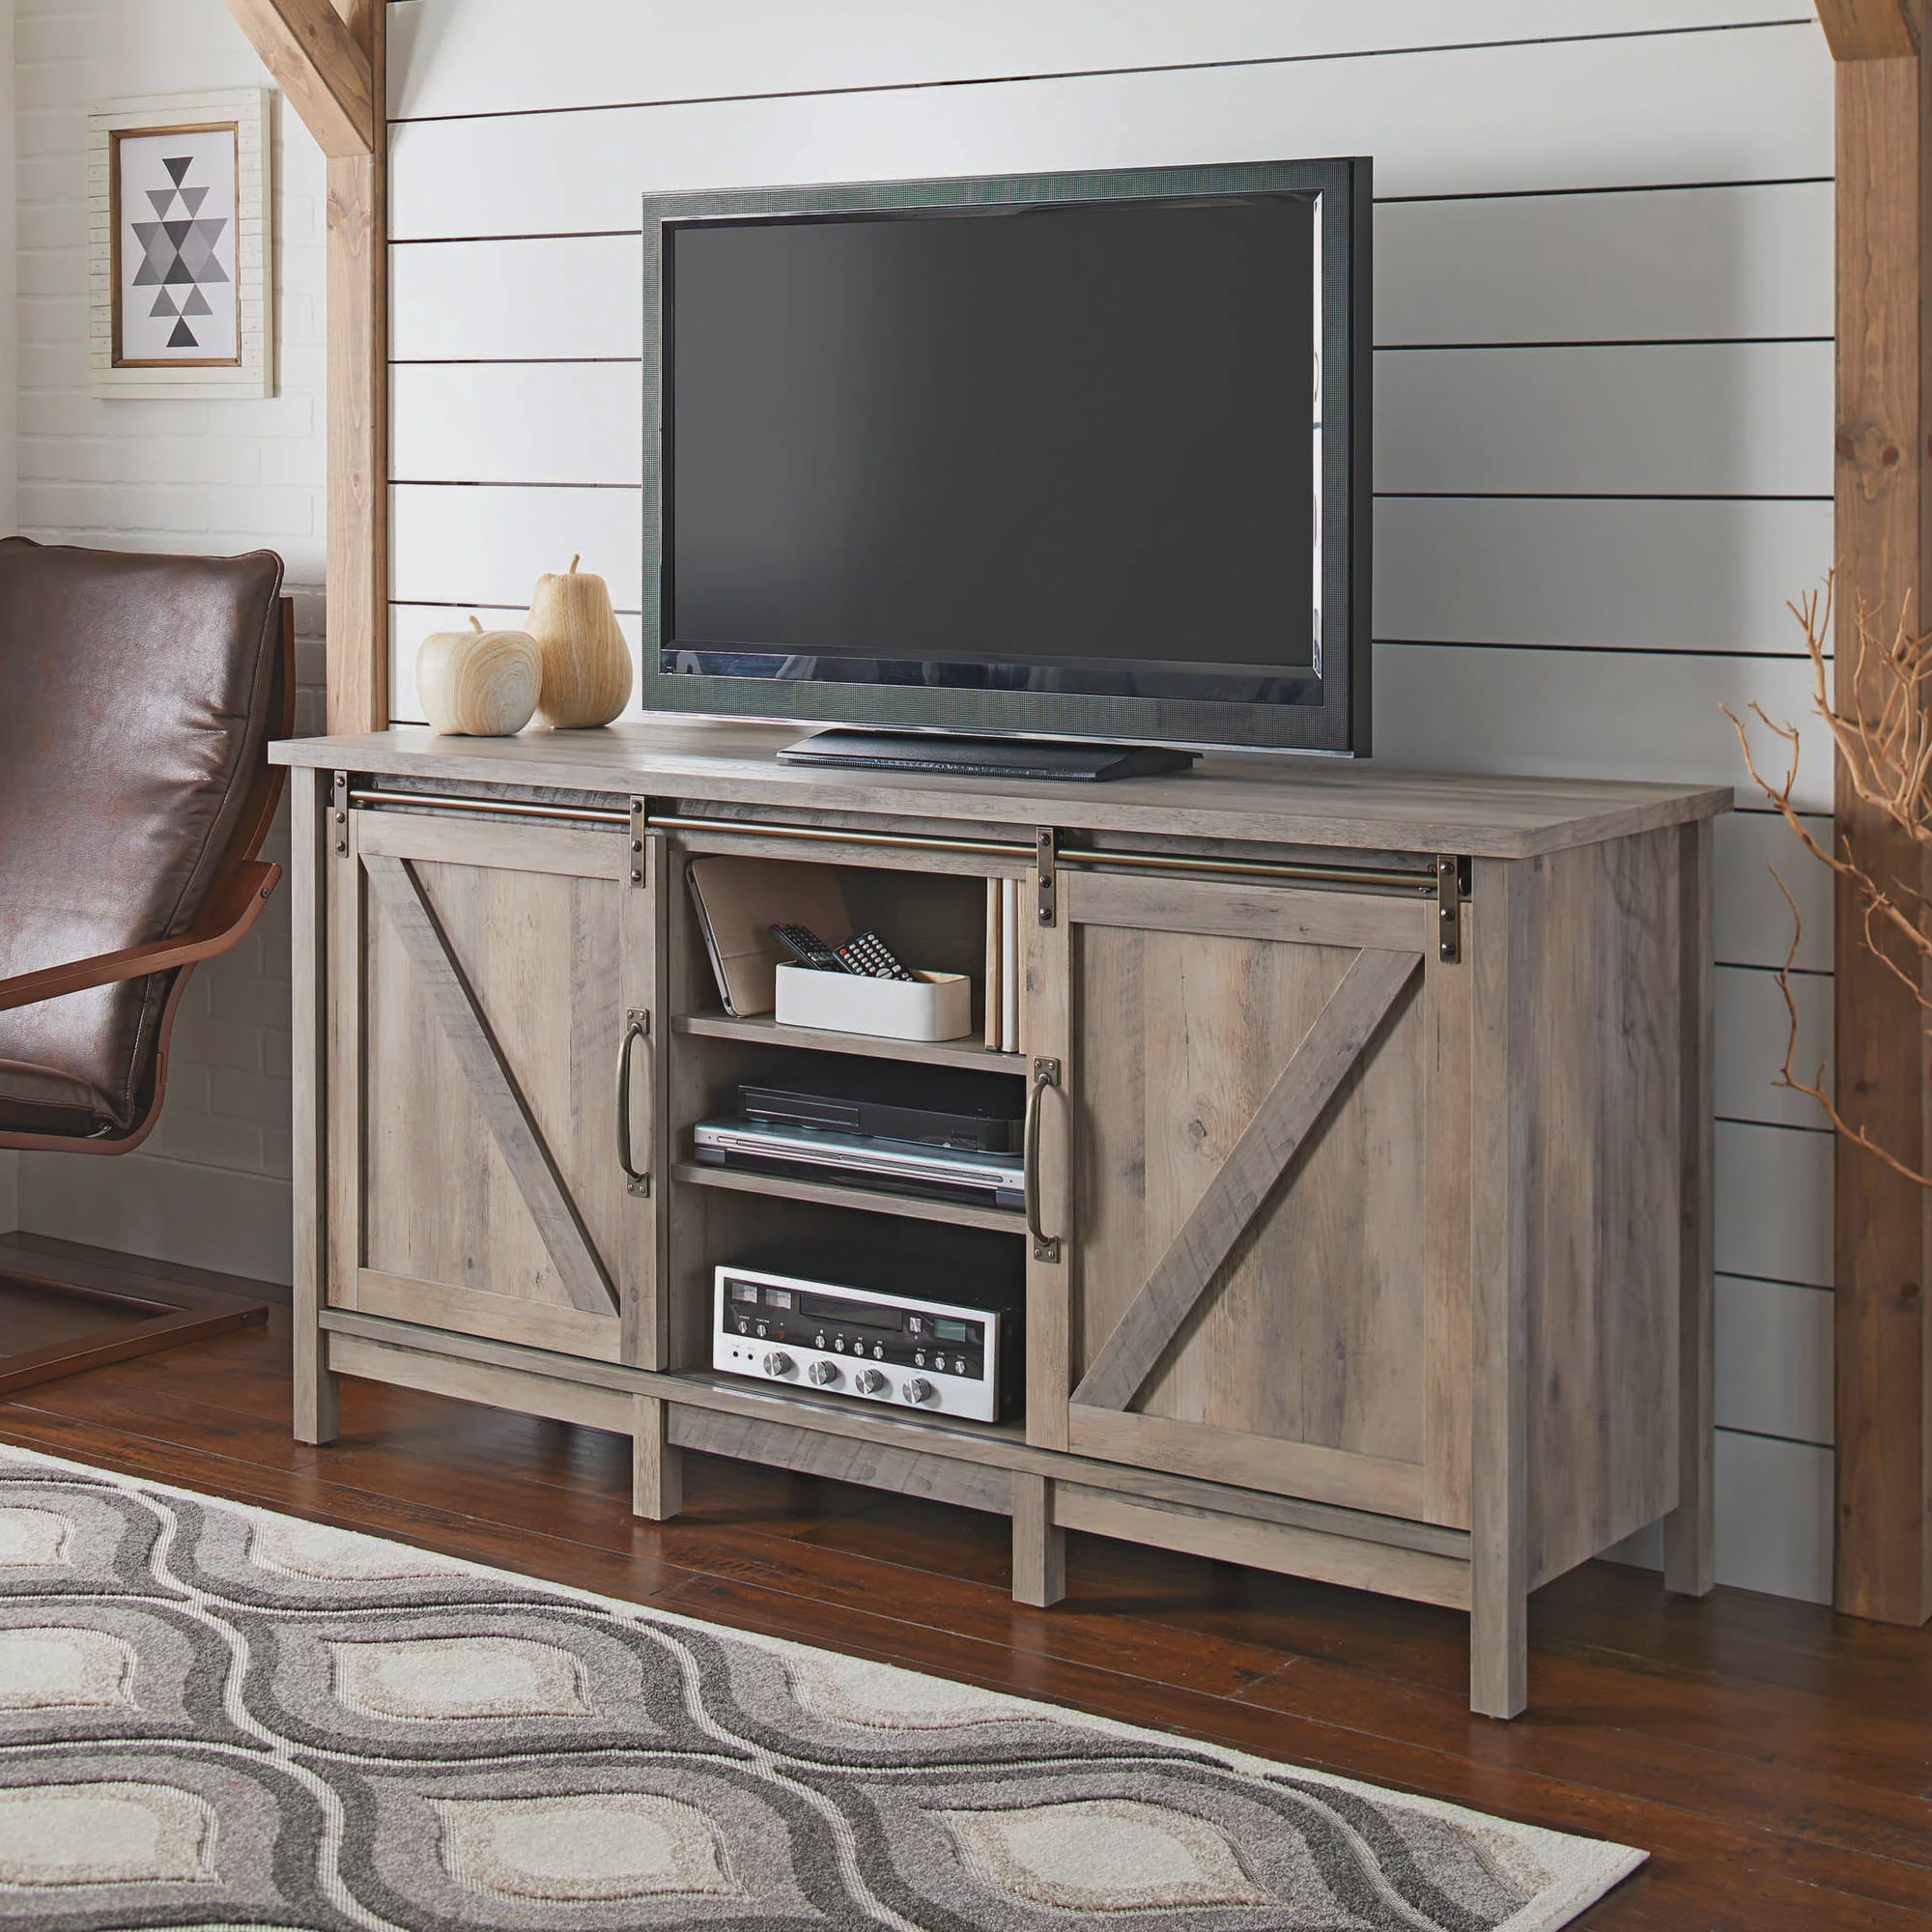 Better Homes Gardens Modern Farmhouse Tv Stand For Tvs Up To 70 Rustic Gray Finish Walmart Com Walmart Com